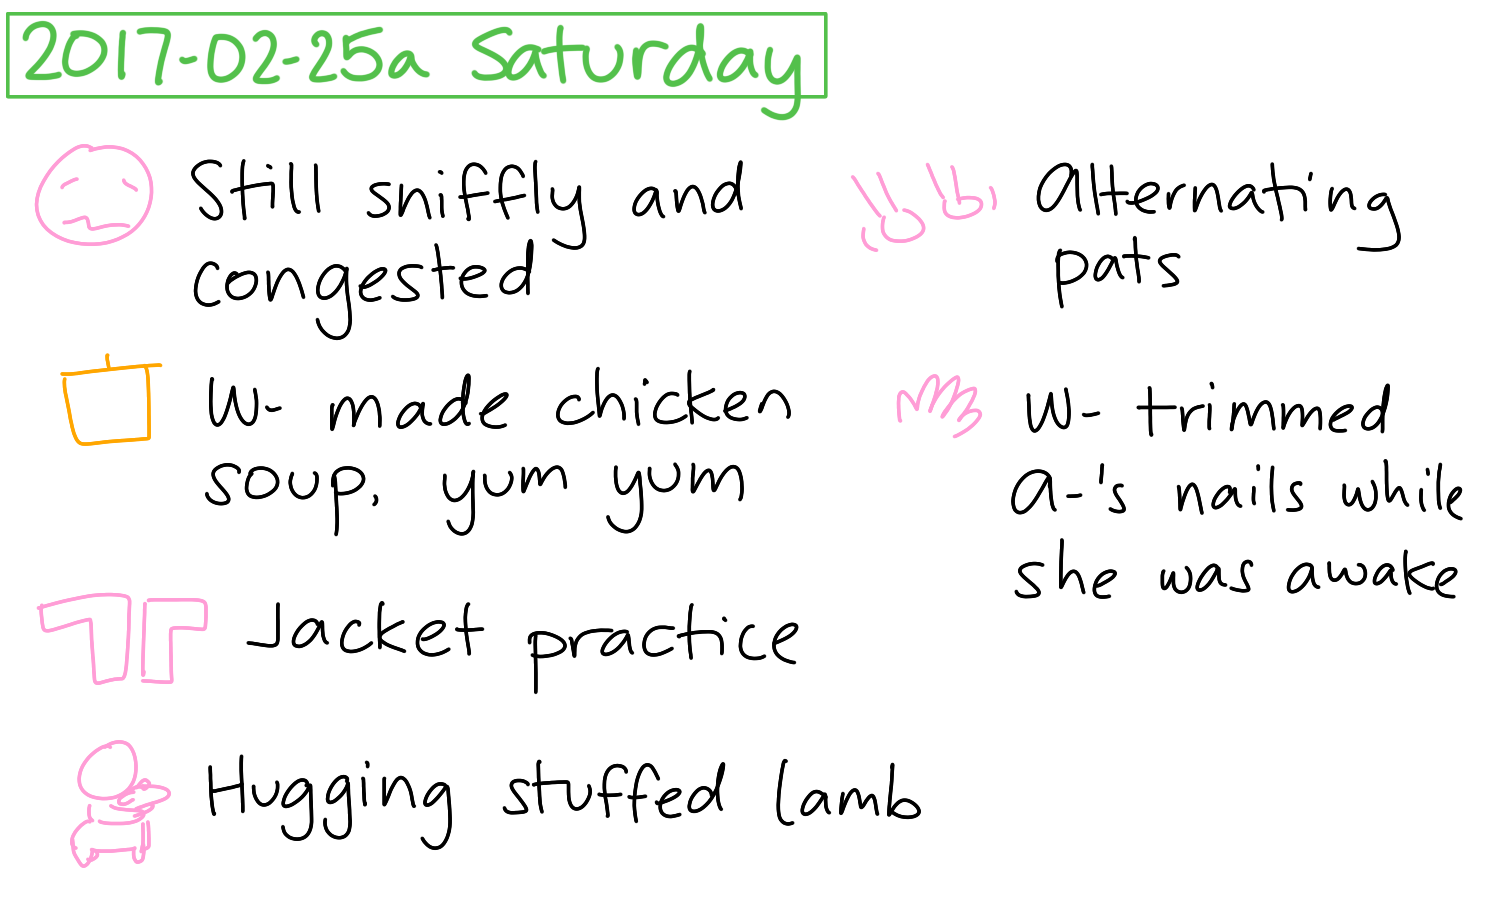 2017-02-25a Saturday #daily #journal.png